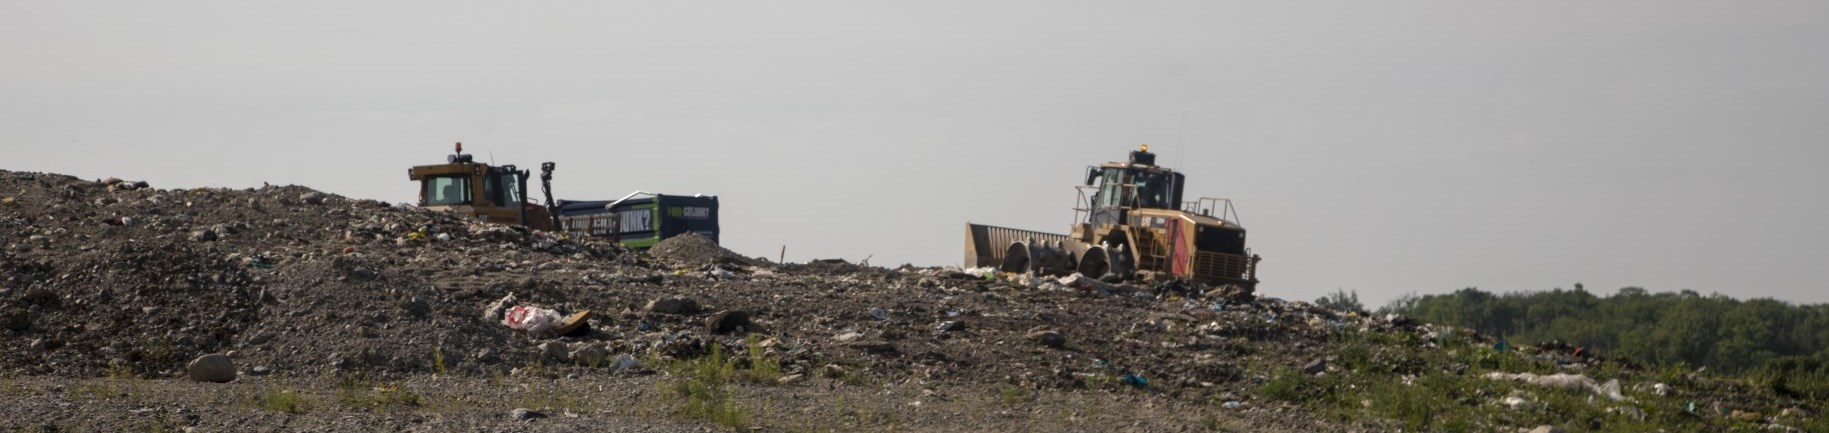 Landfill and tractor